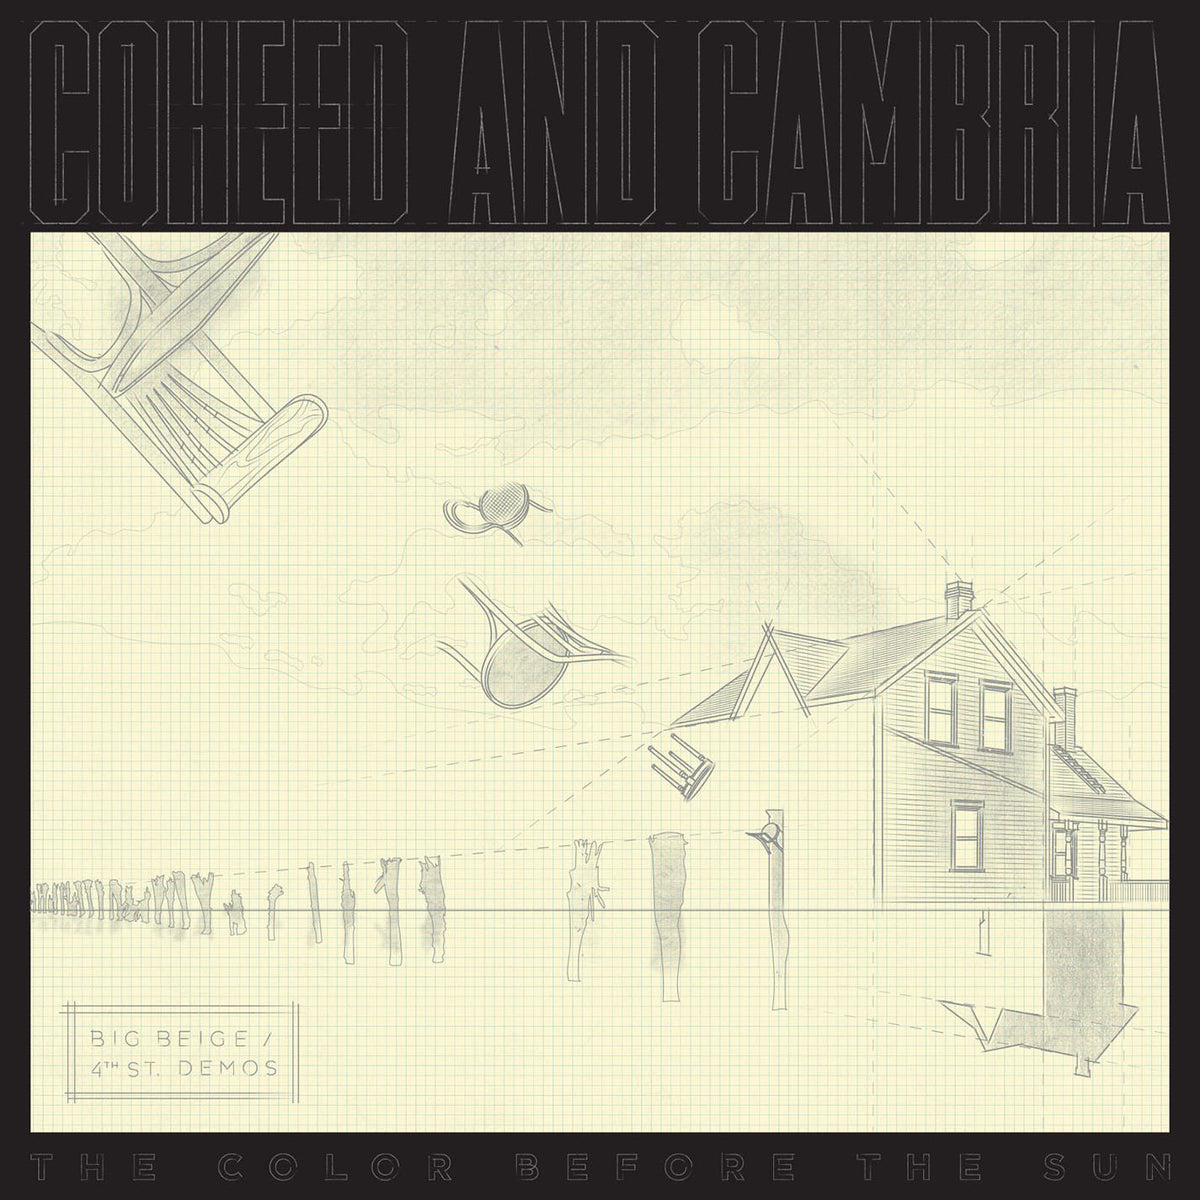 Coheed and Cambria: The Color Before The Sun: Official Band Demos (Colored Vinyl) Vinyl LP (Record Store Day)